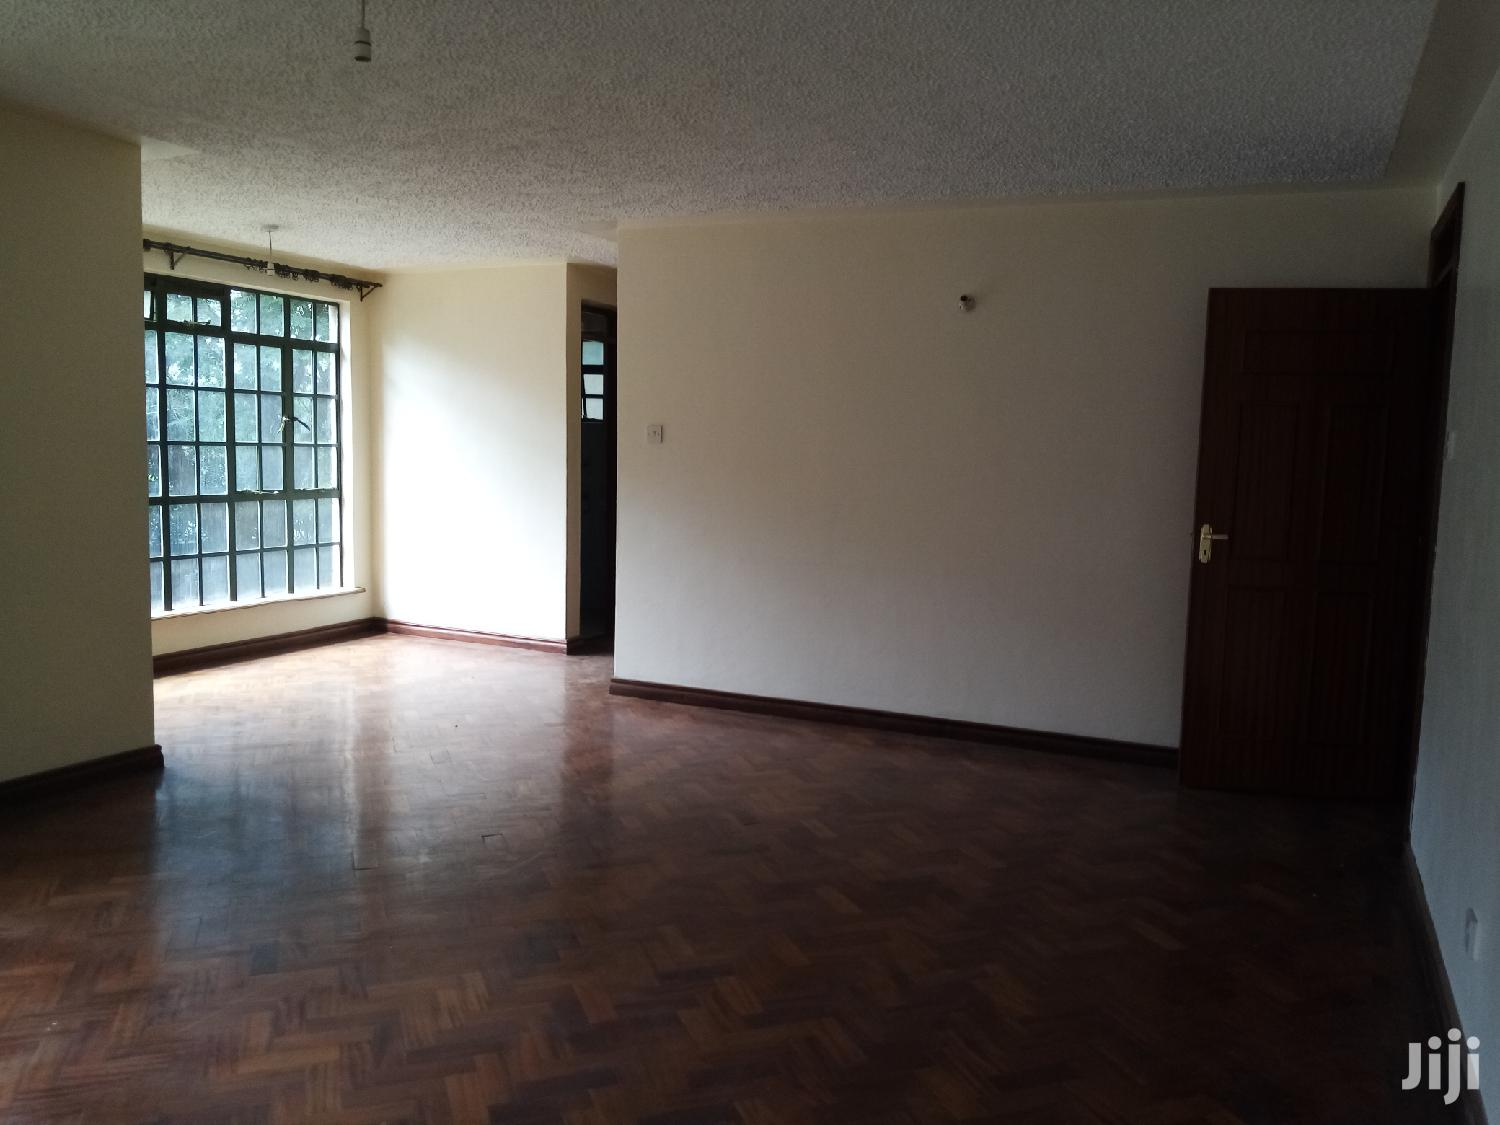 Property World,3brs Apartment All Ensuite, Pool, And Secure   Houses & Apartments For Rent for sale in Lavington, Nairobi, Kenya